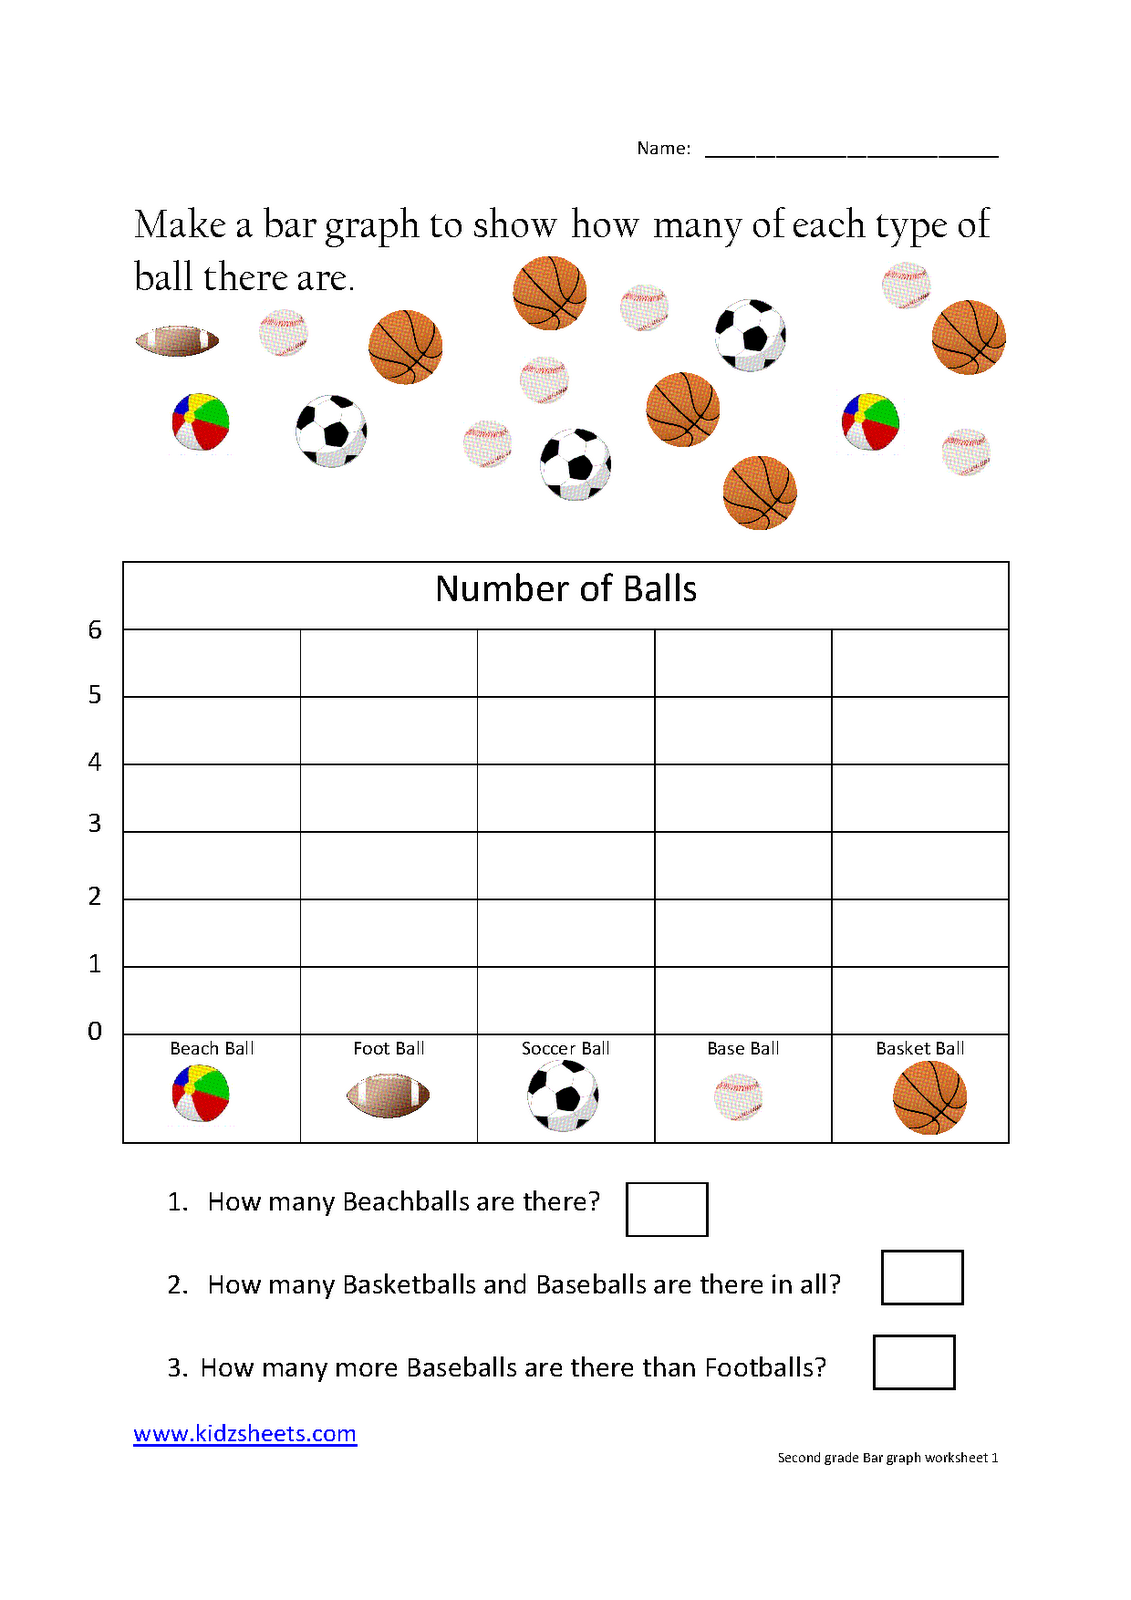 math worksheet : kidz worksheets second grade bar graph worksheet1 : Math For Second Graders Printable Worksheets